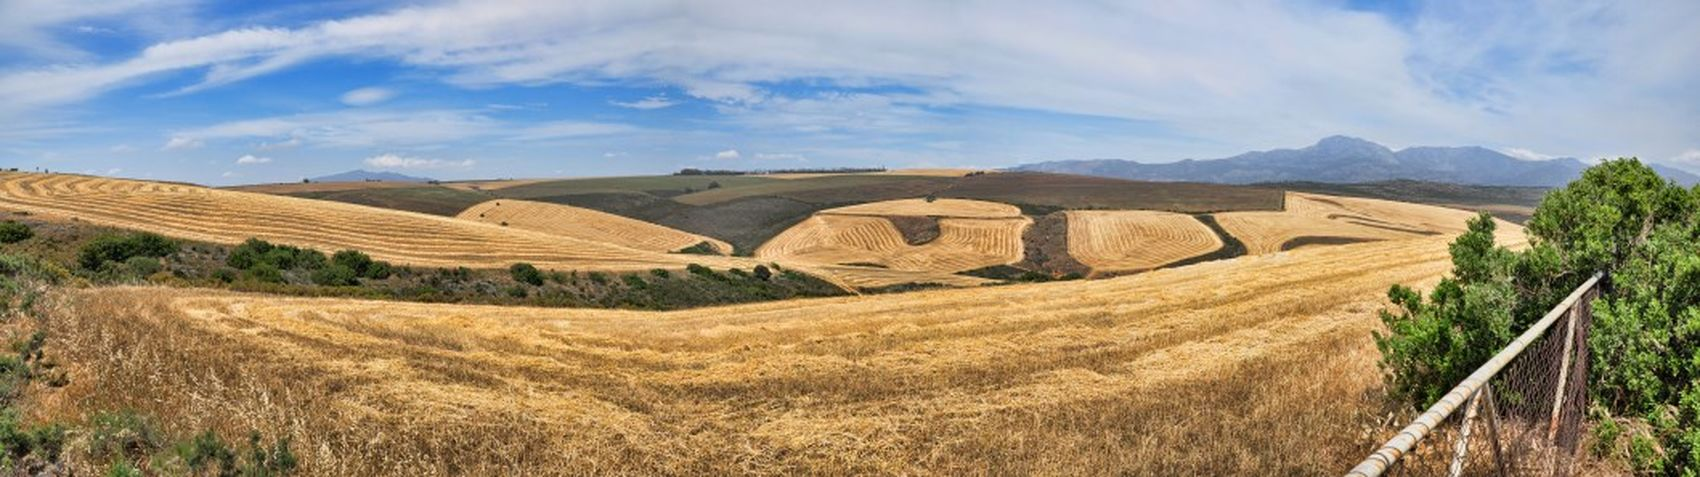 Wheat fields. Photography Scenicview Landscape Panorama